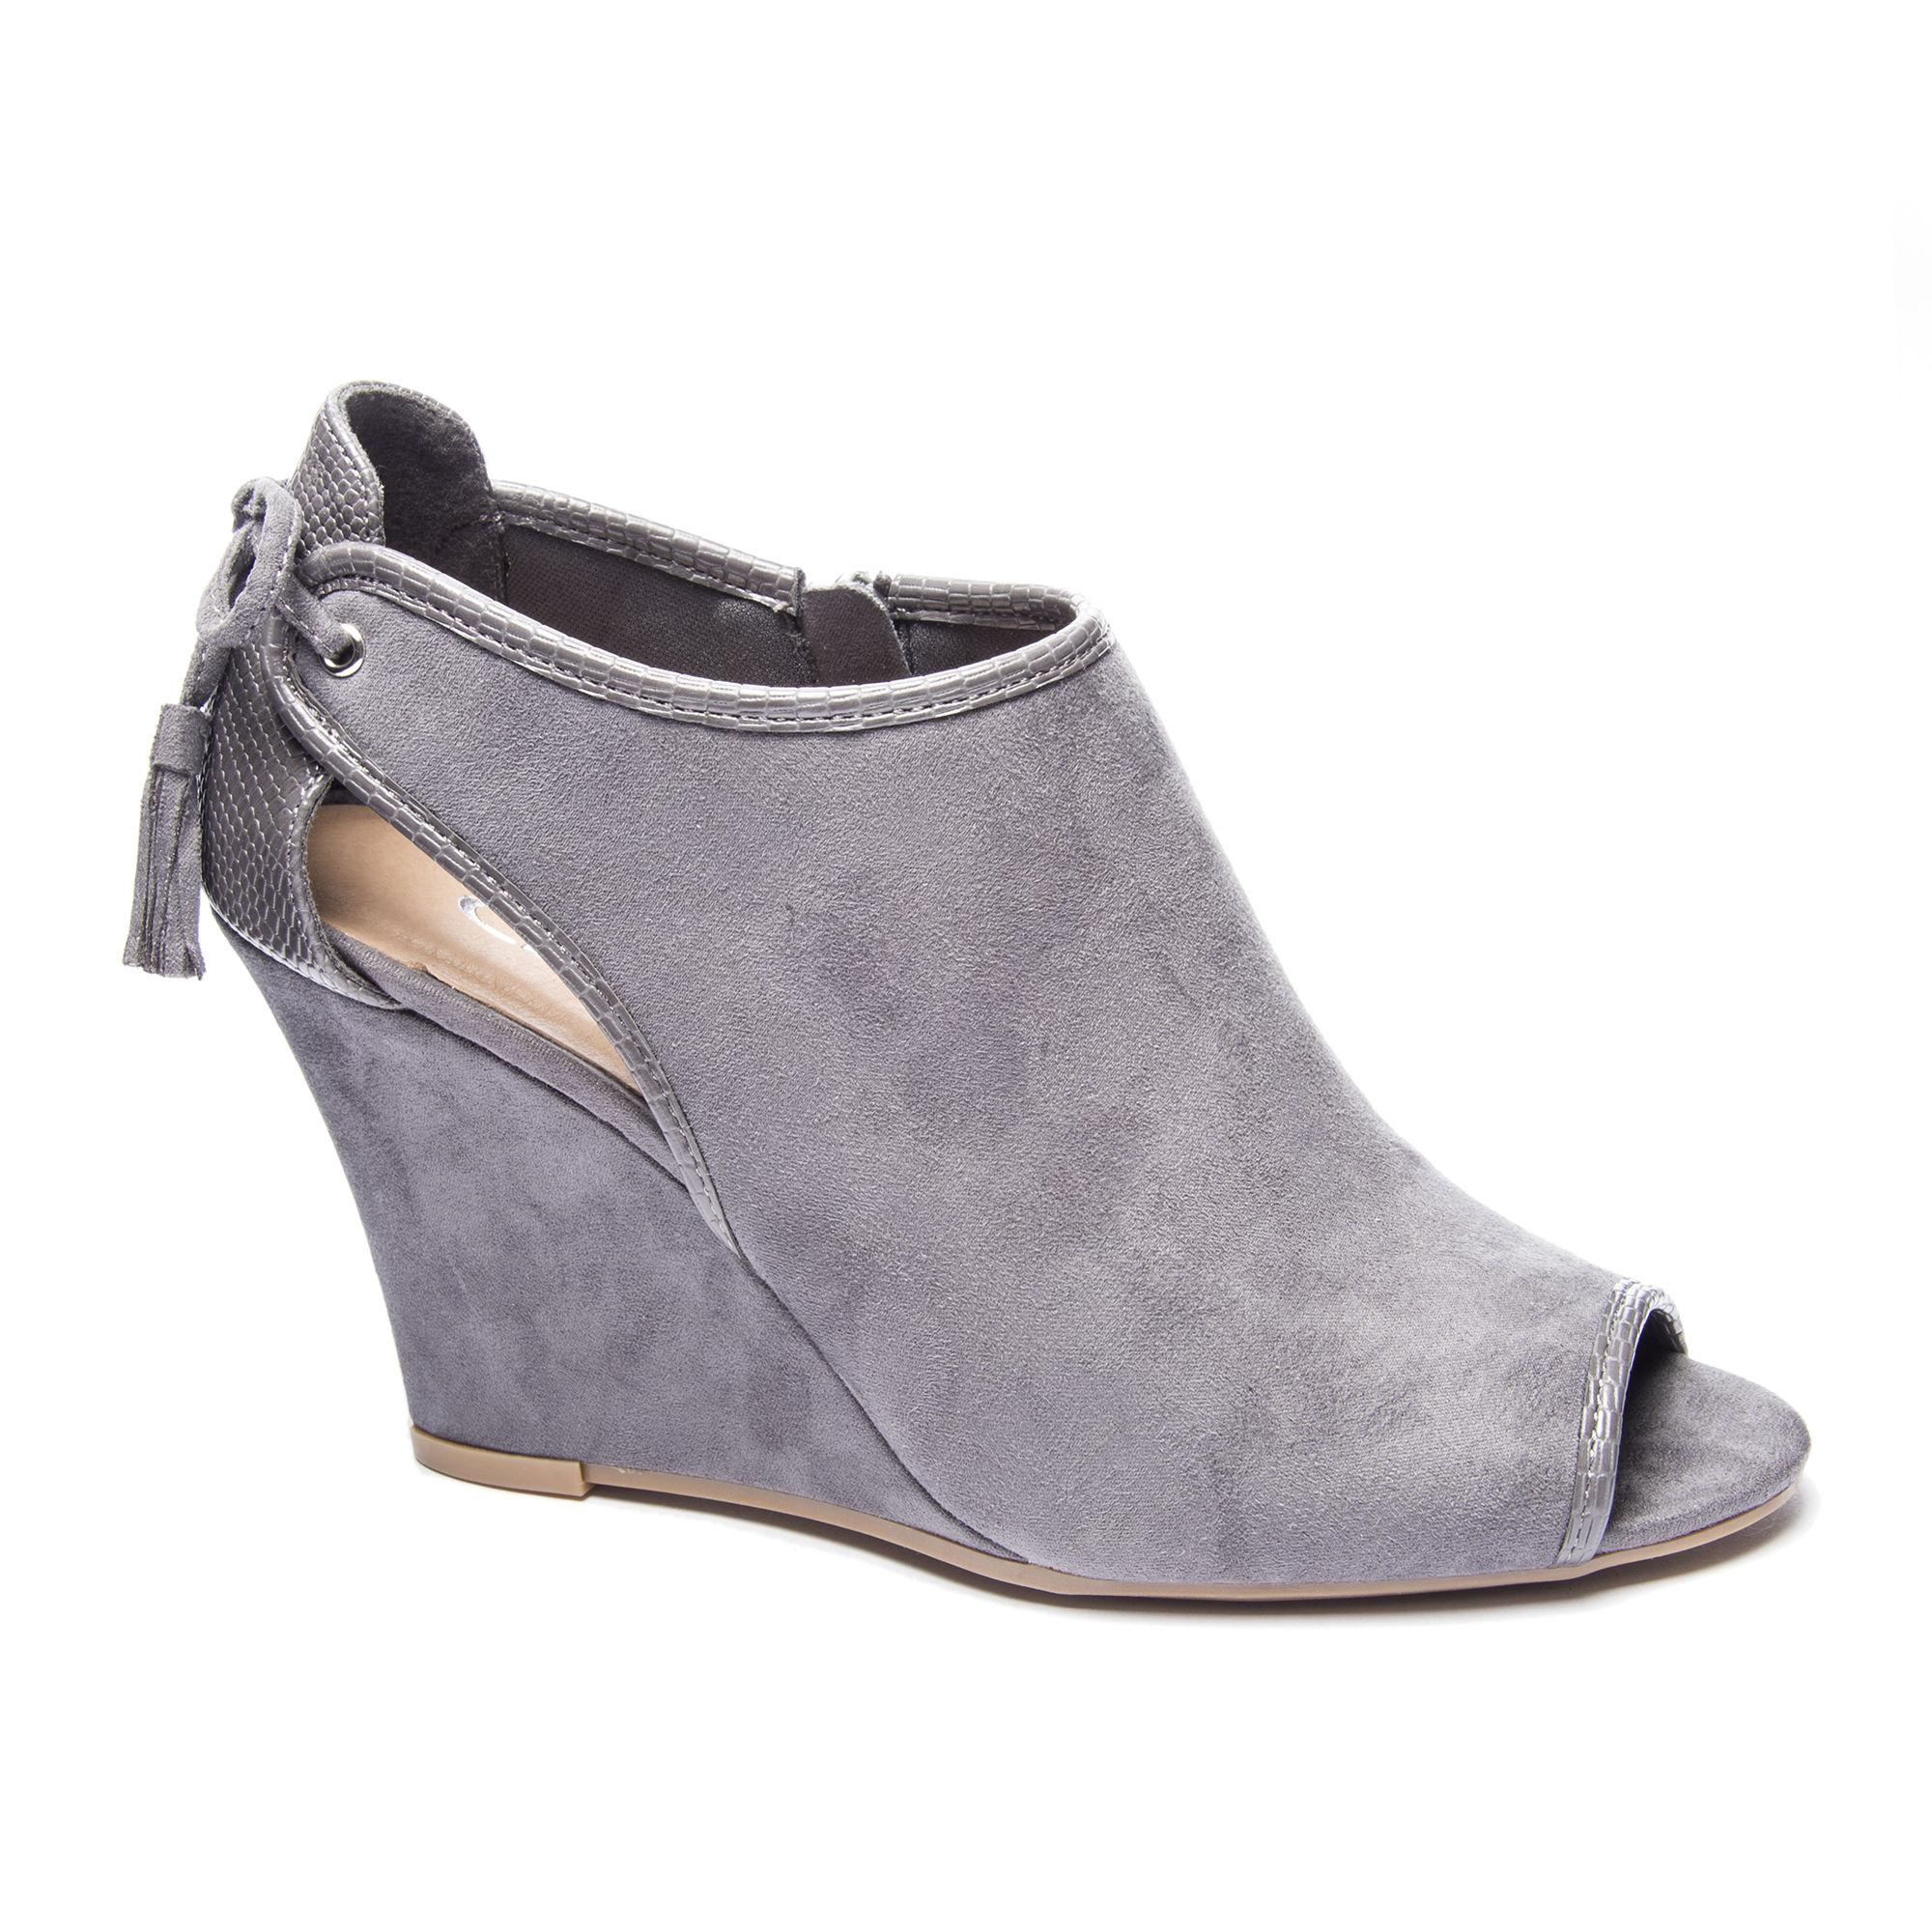 c4aef95ebfe9 Lyst - Chinese Laundry Brinley Wedge Bootie in Gray